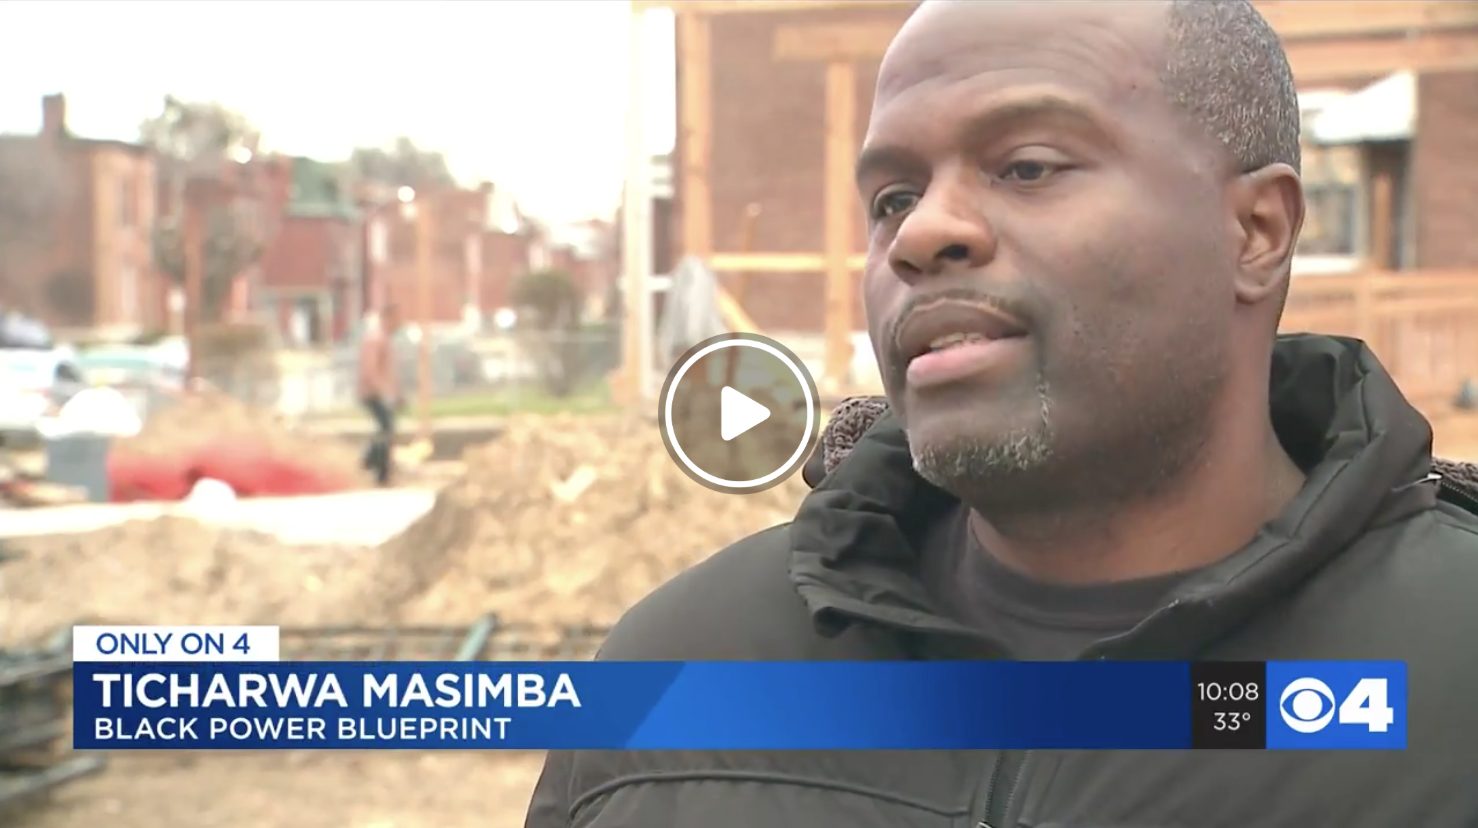 KMOV Channel 4 in St. Louis, MO Reports on Black Power Blueprint